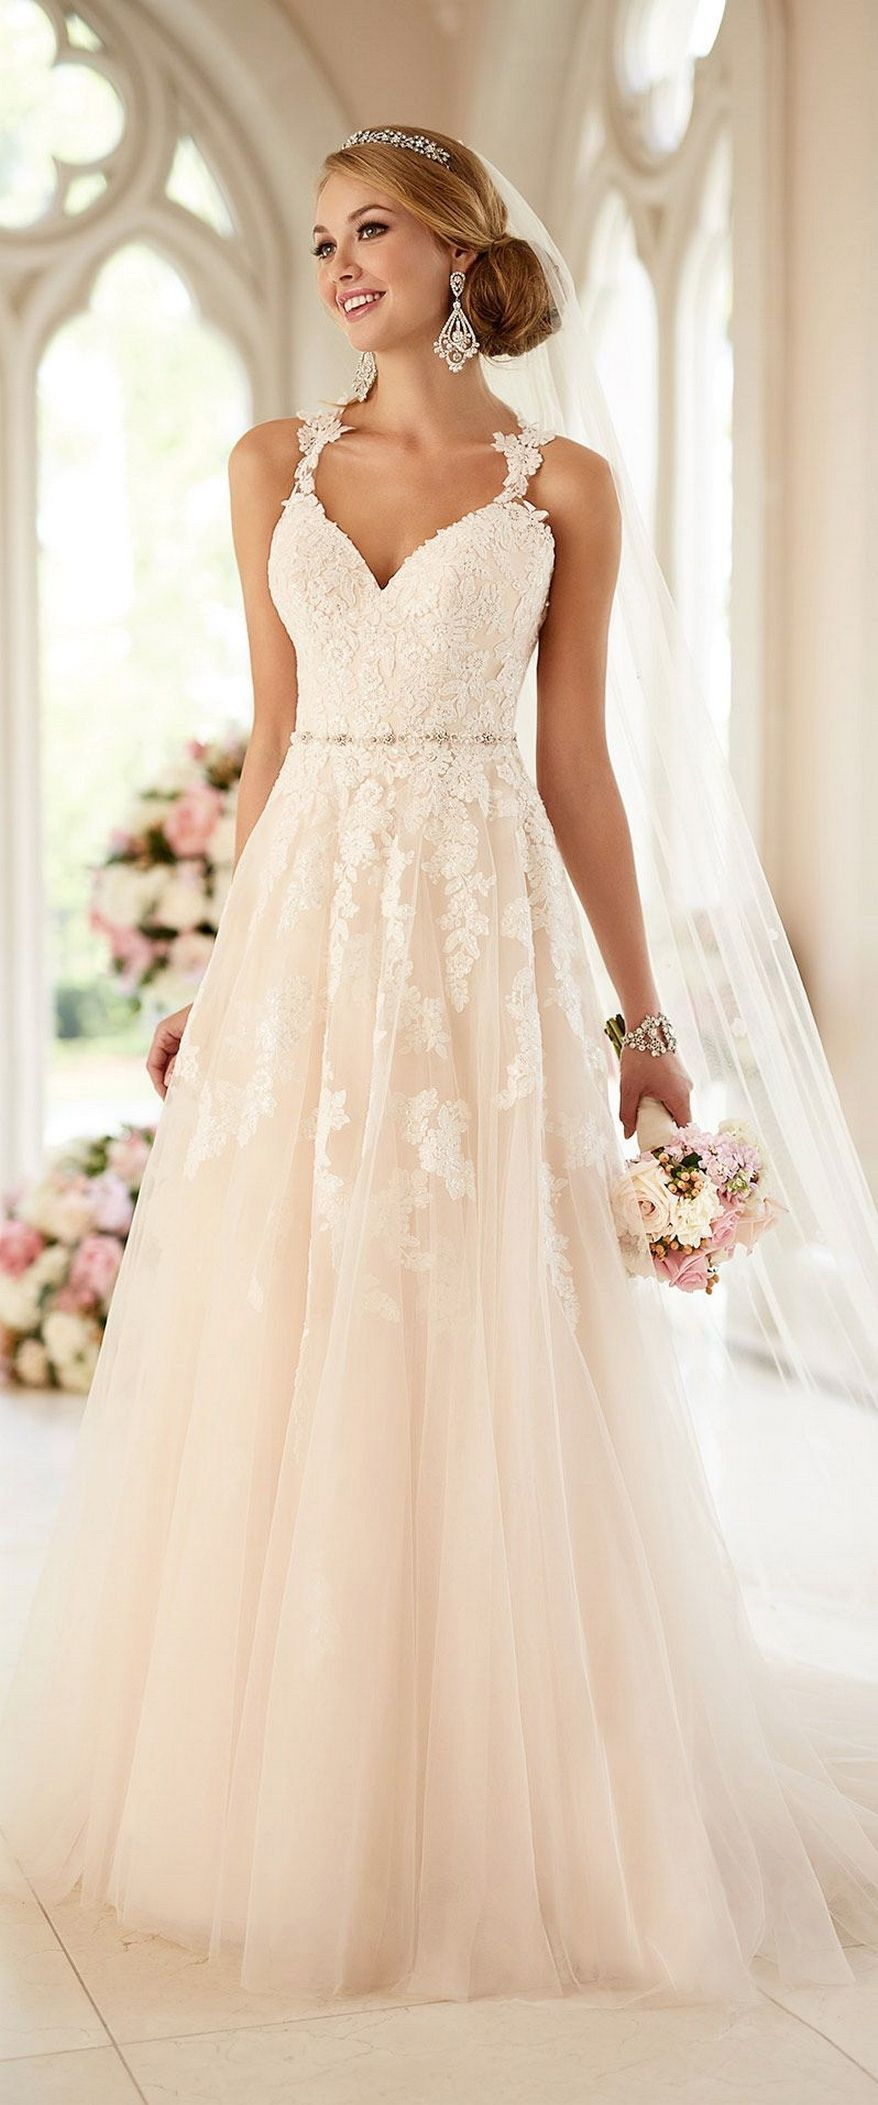 100+ Beautiful Beach Wedding Dresses to Inspire You | Brautmode